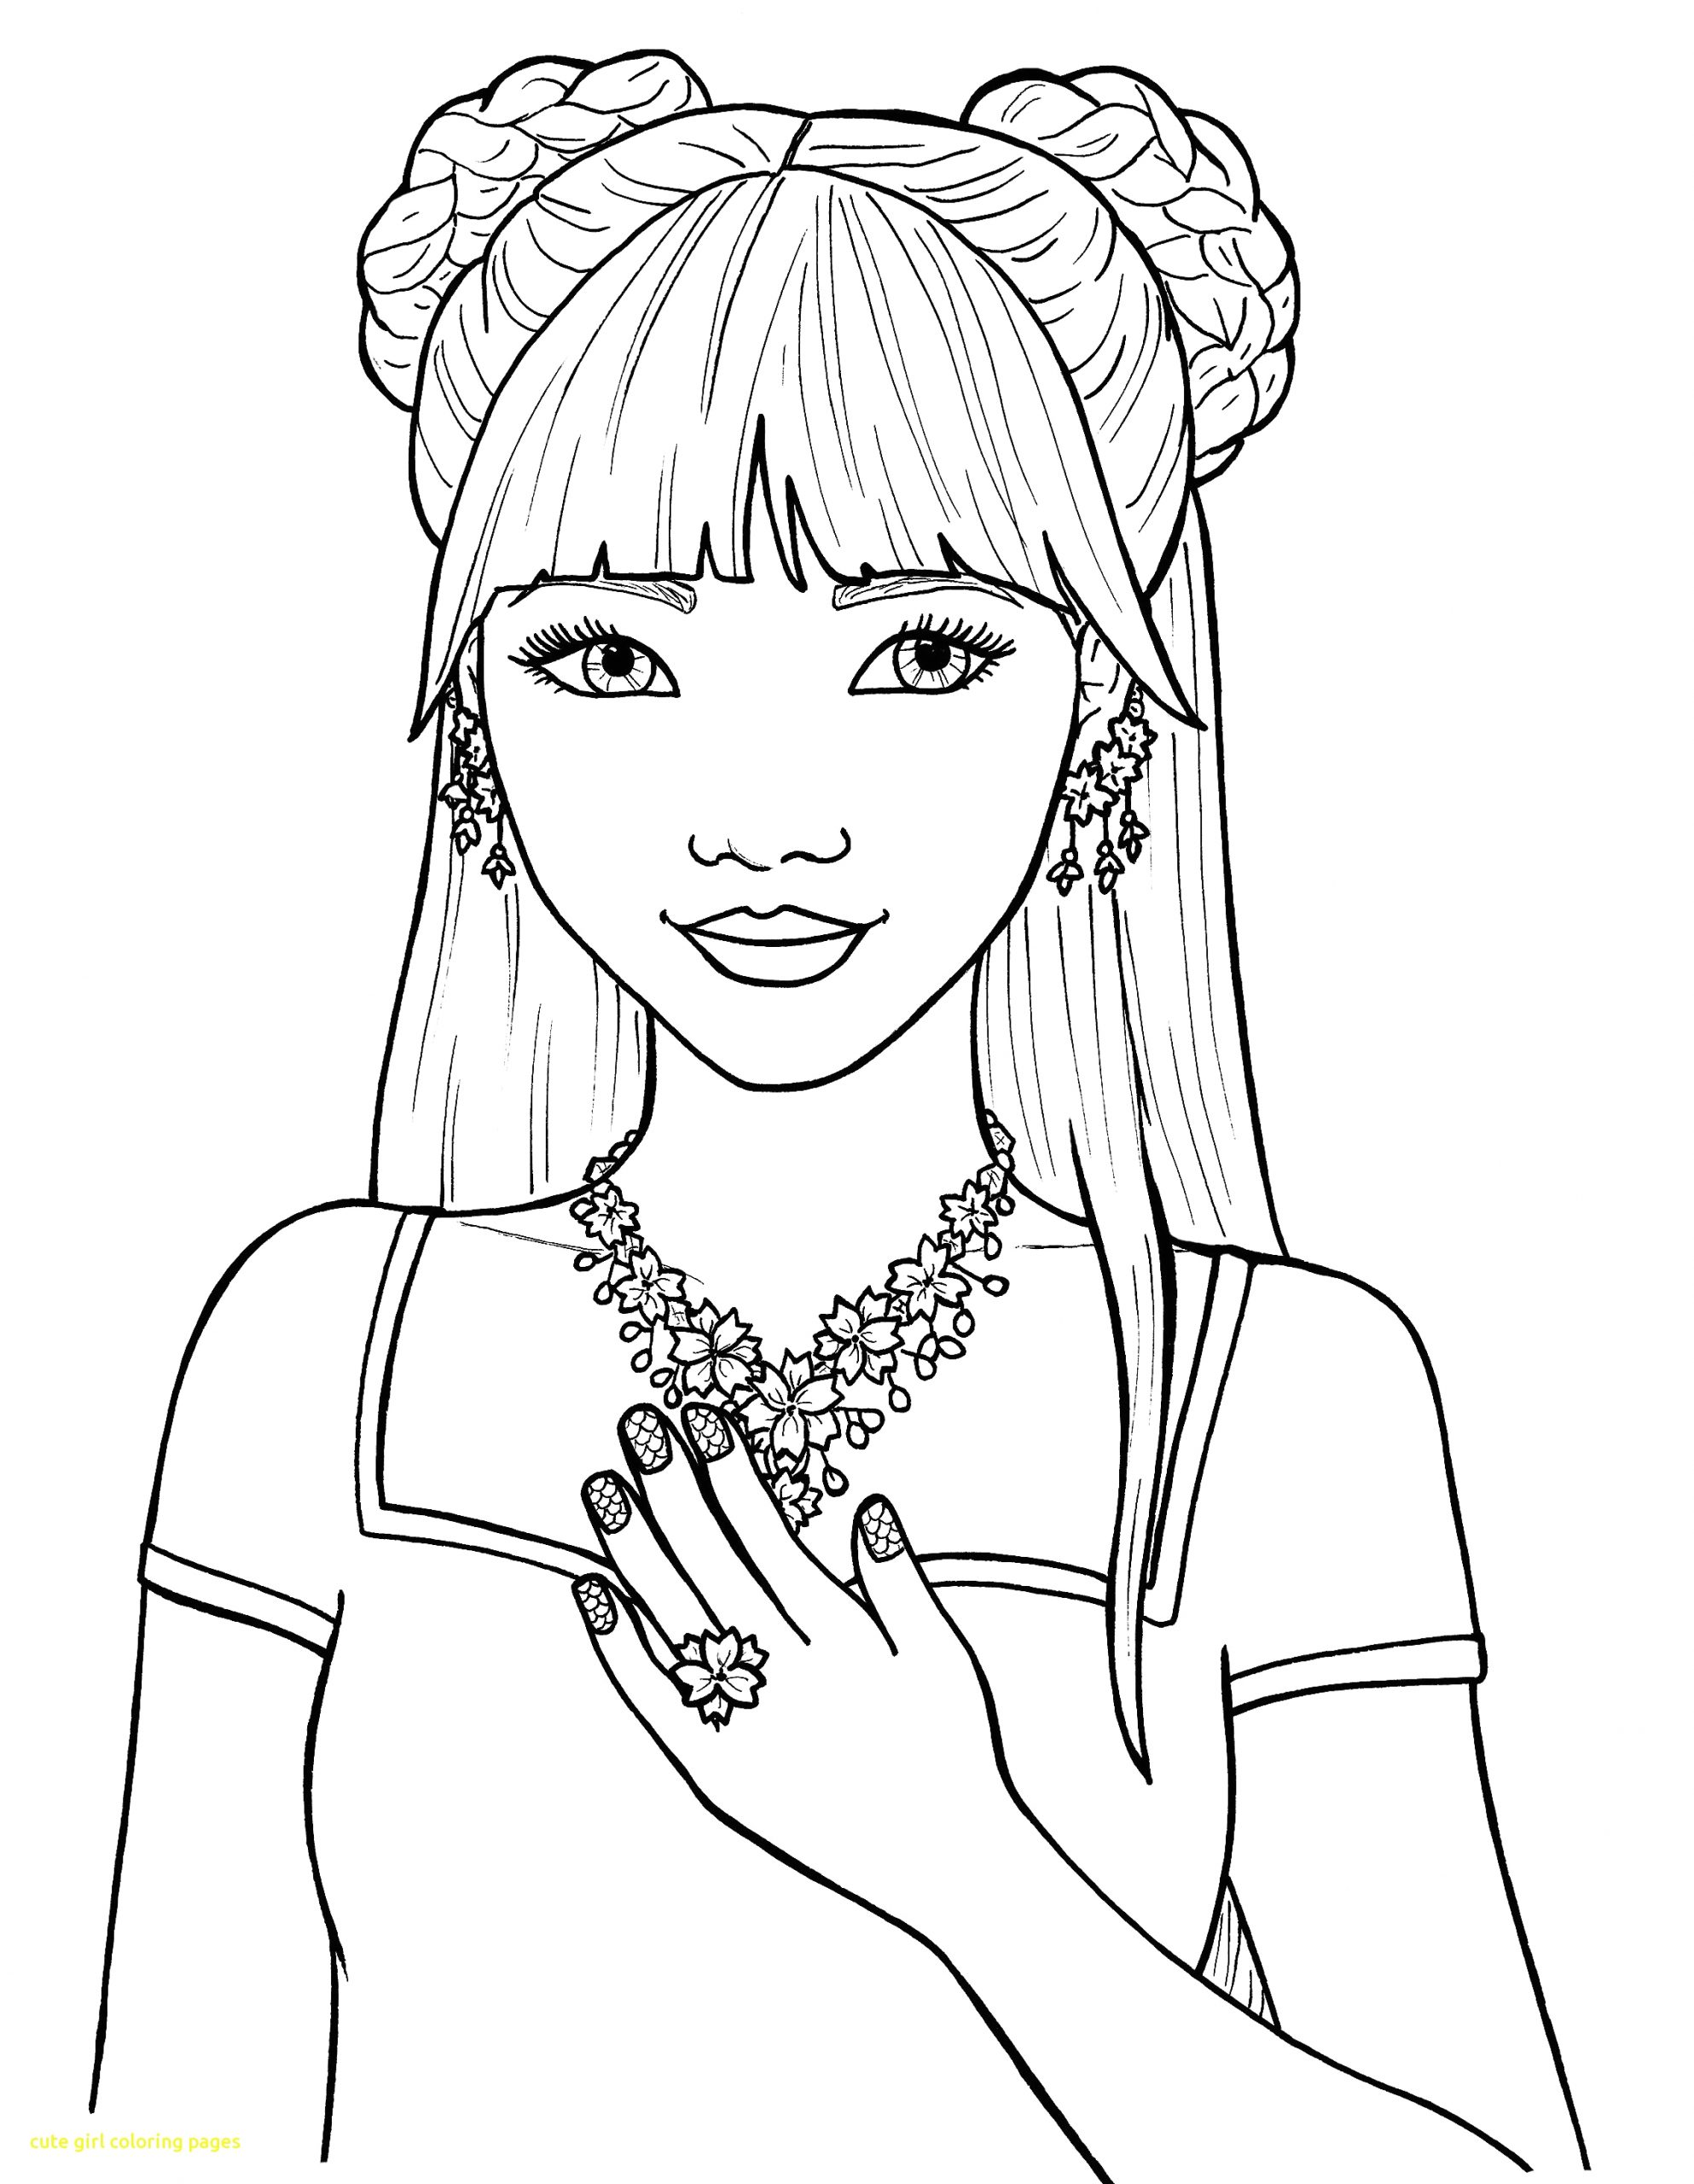 Coloring Pages for Girls 12 and Up Coloring Pages for Girls Best Coloring Pages for Kids